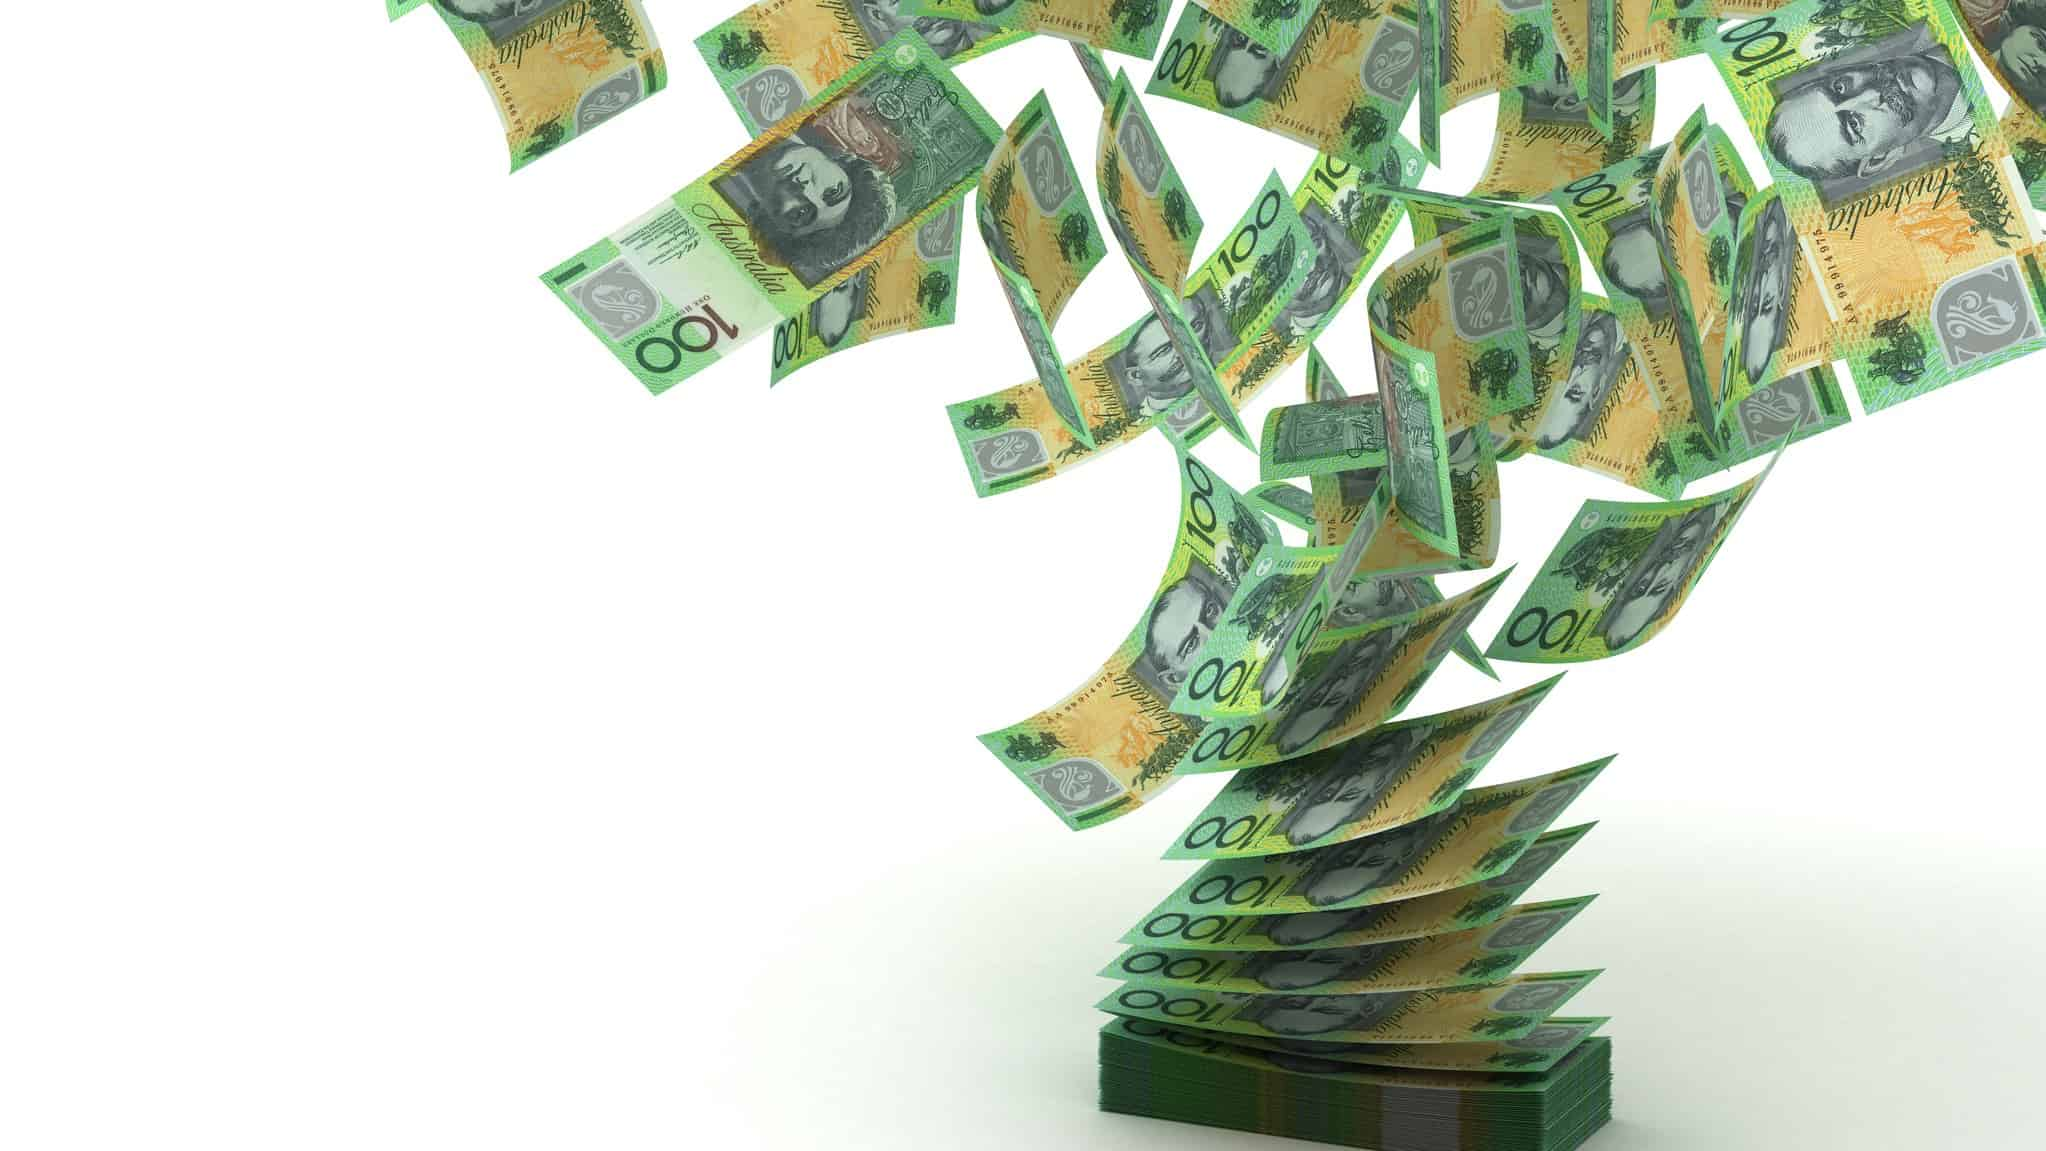 relaxing of australian lending rules represented by one hundred dollar notes flying freely through the air